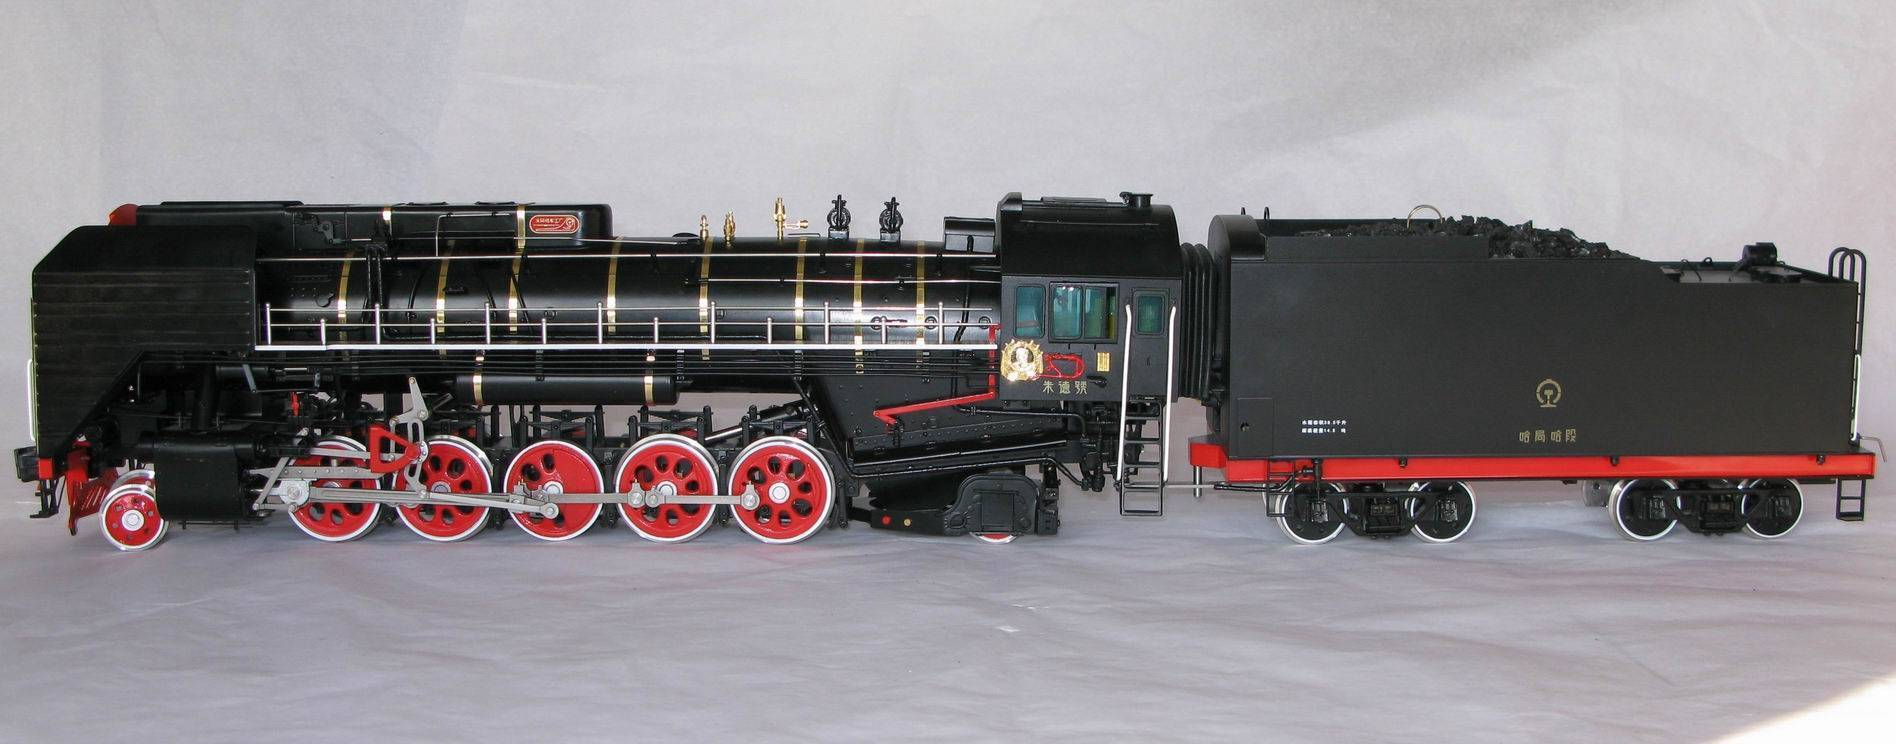 Metal crafts - O scale electric train